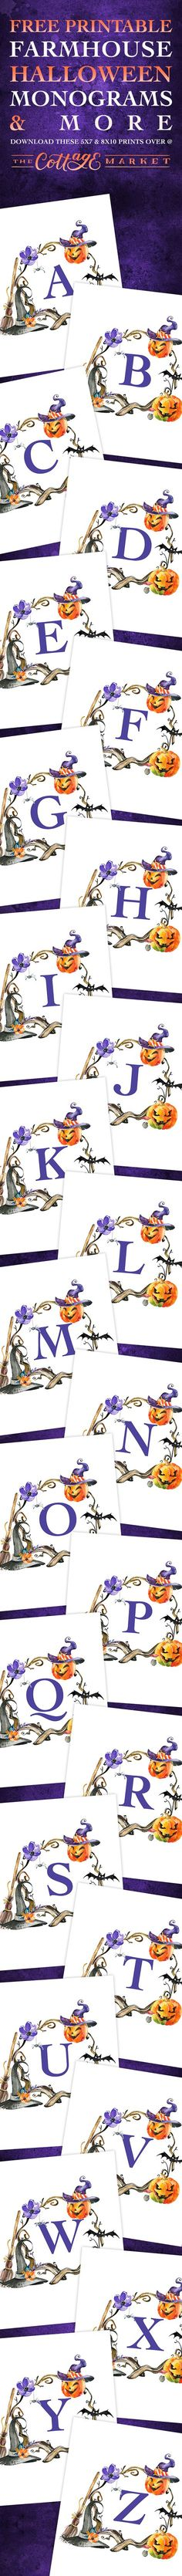 best halloween images on pinterest in wedding ideas